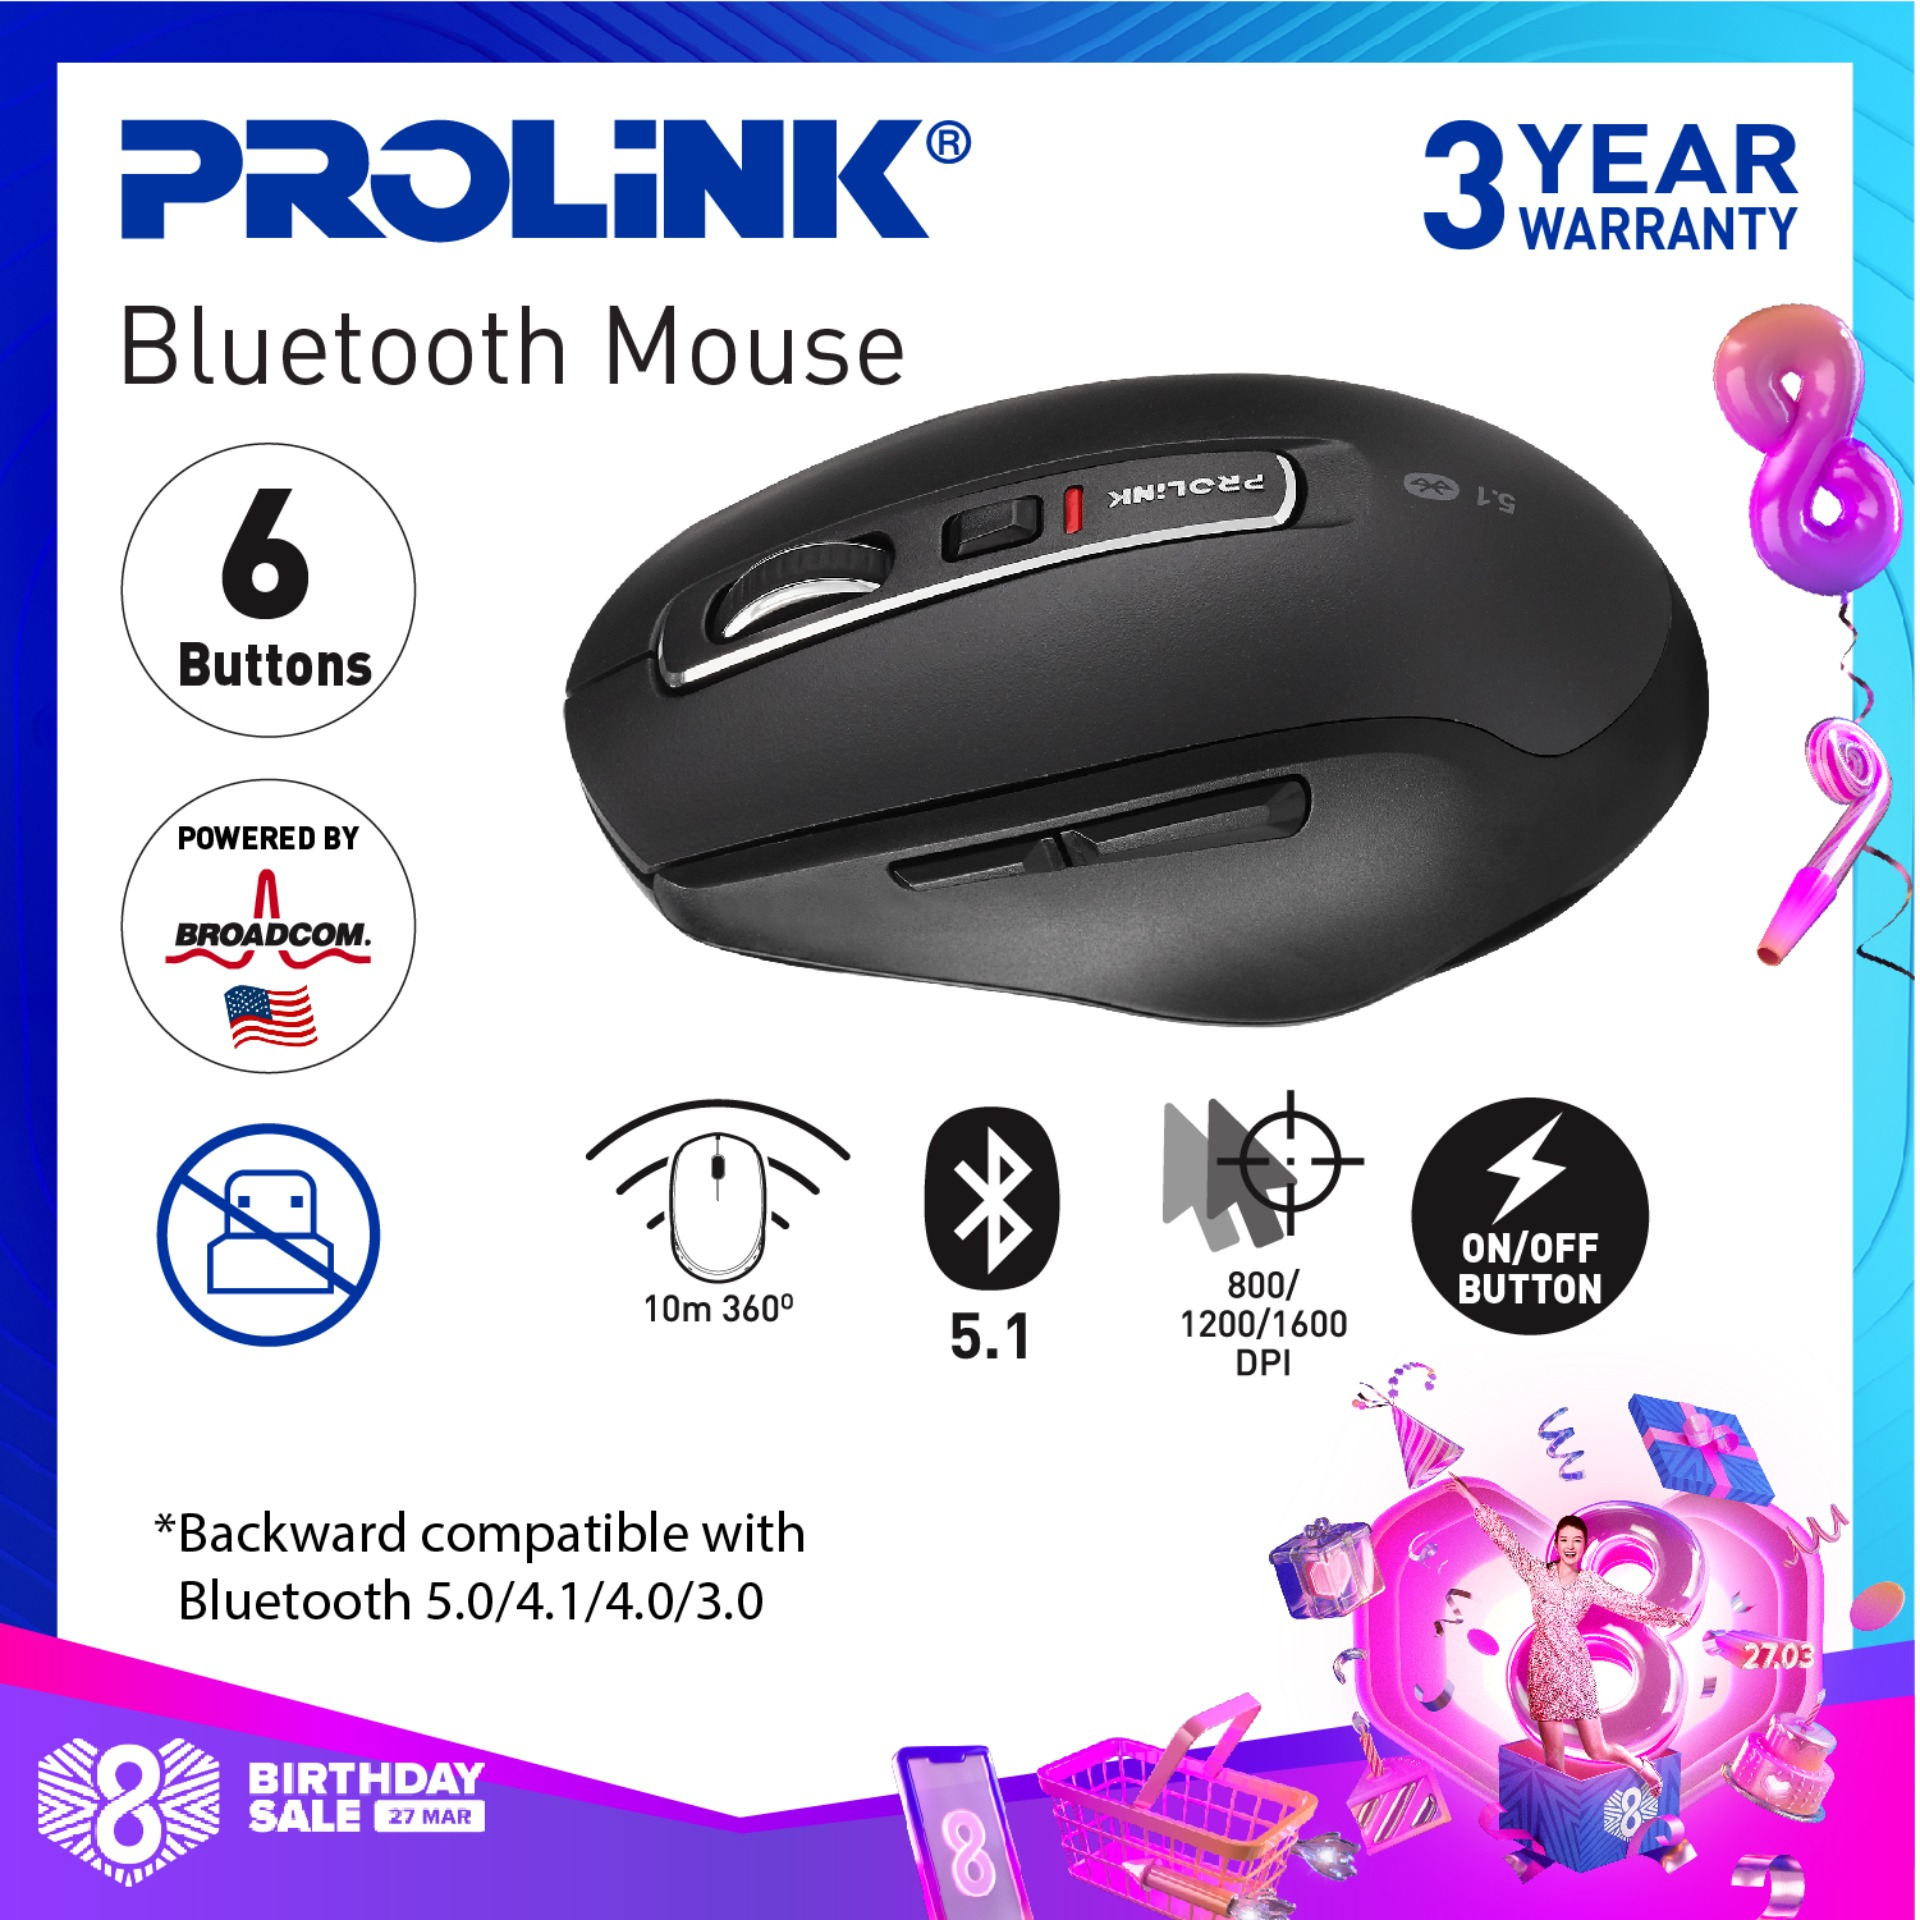 NEW! PROLiNK PMB8502 Premium Bluetooth 5.1 Wireless Mouse - 6 buttons (Broadcom Chipset from USA)